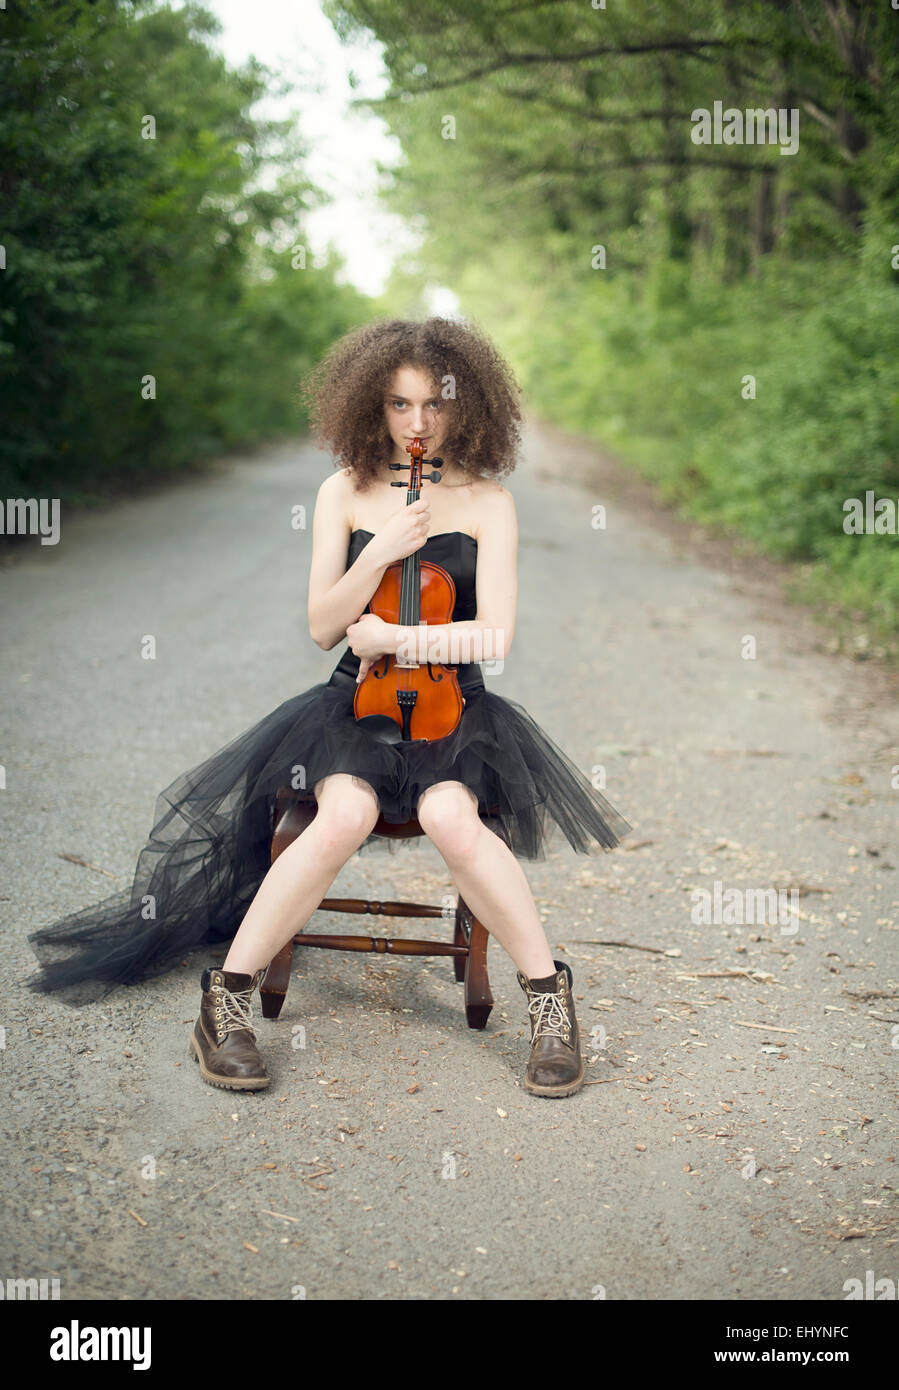 Young woman in a black dress sitting with her violin - Stock Image